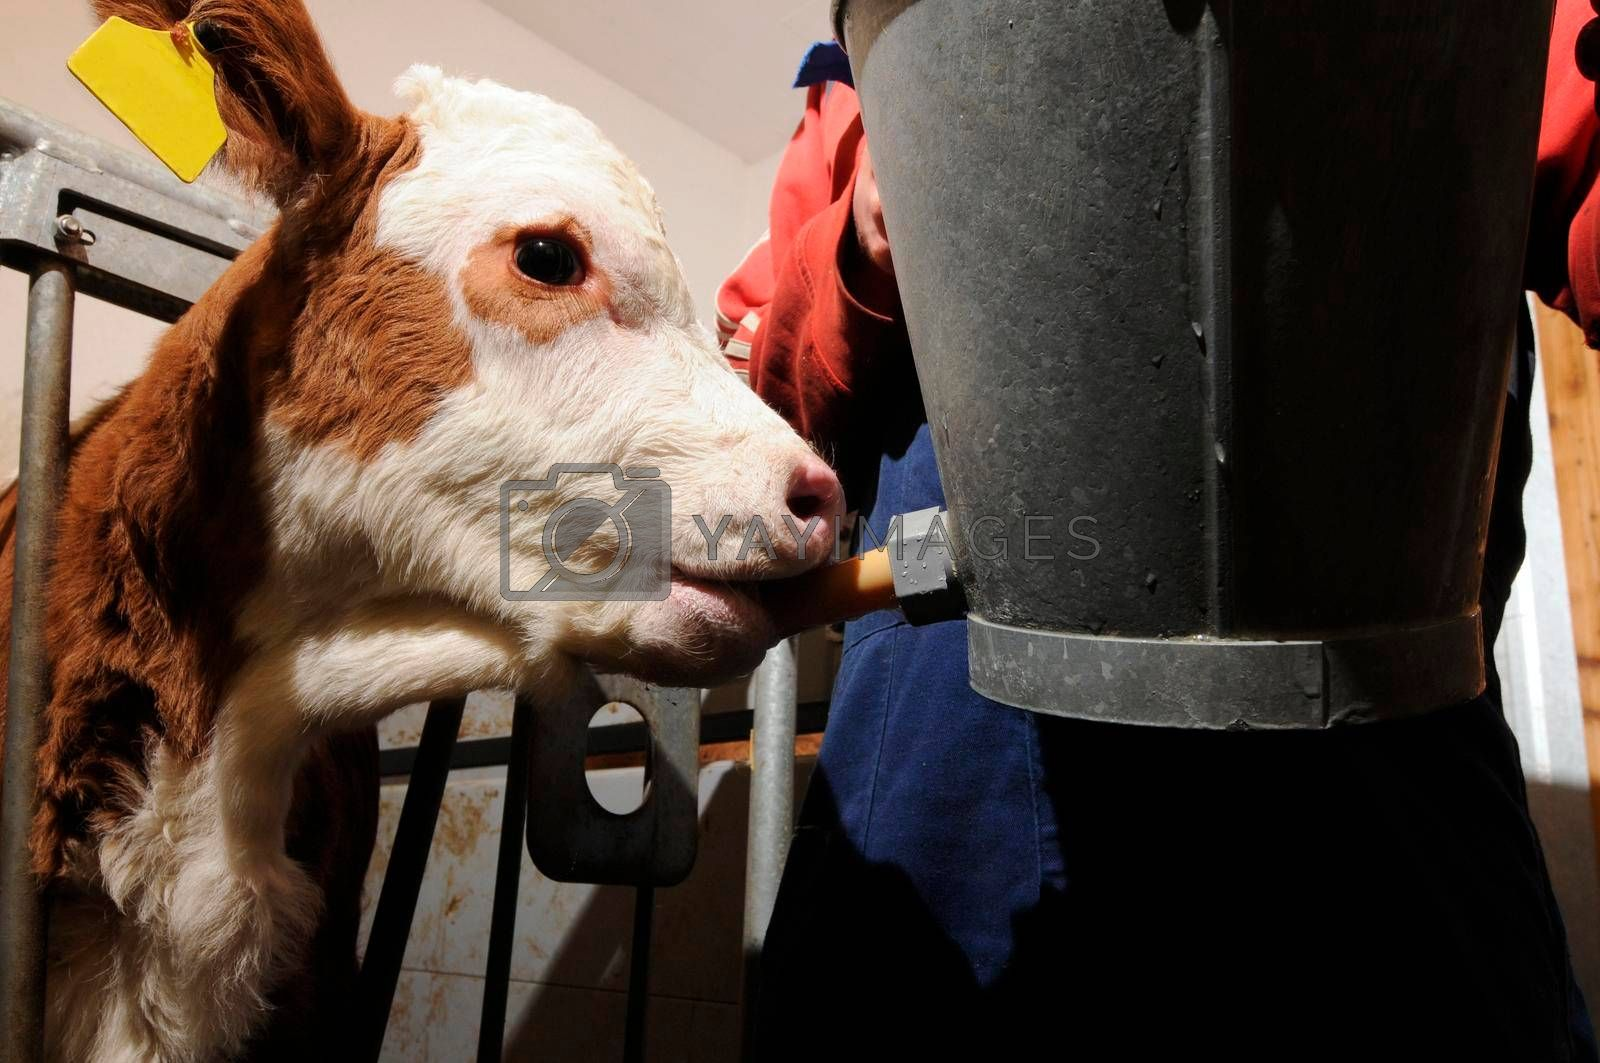 farming feeding a young calf behind the fence, in the cowshed